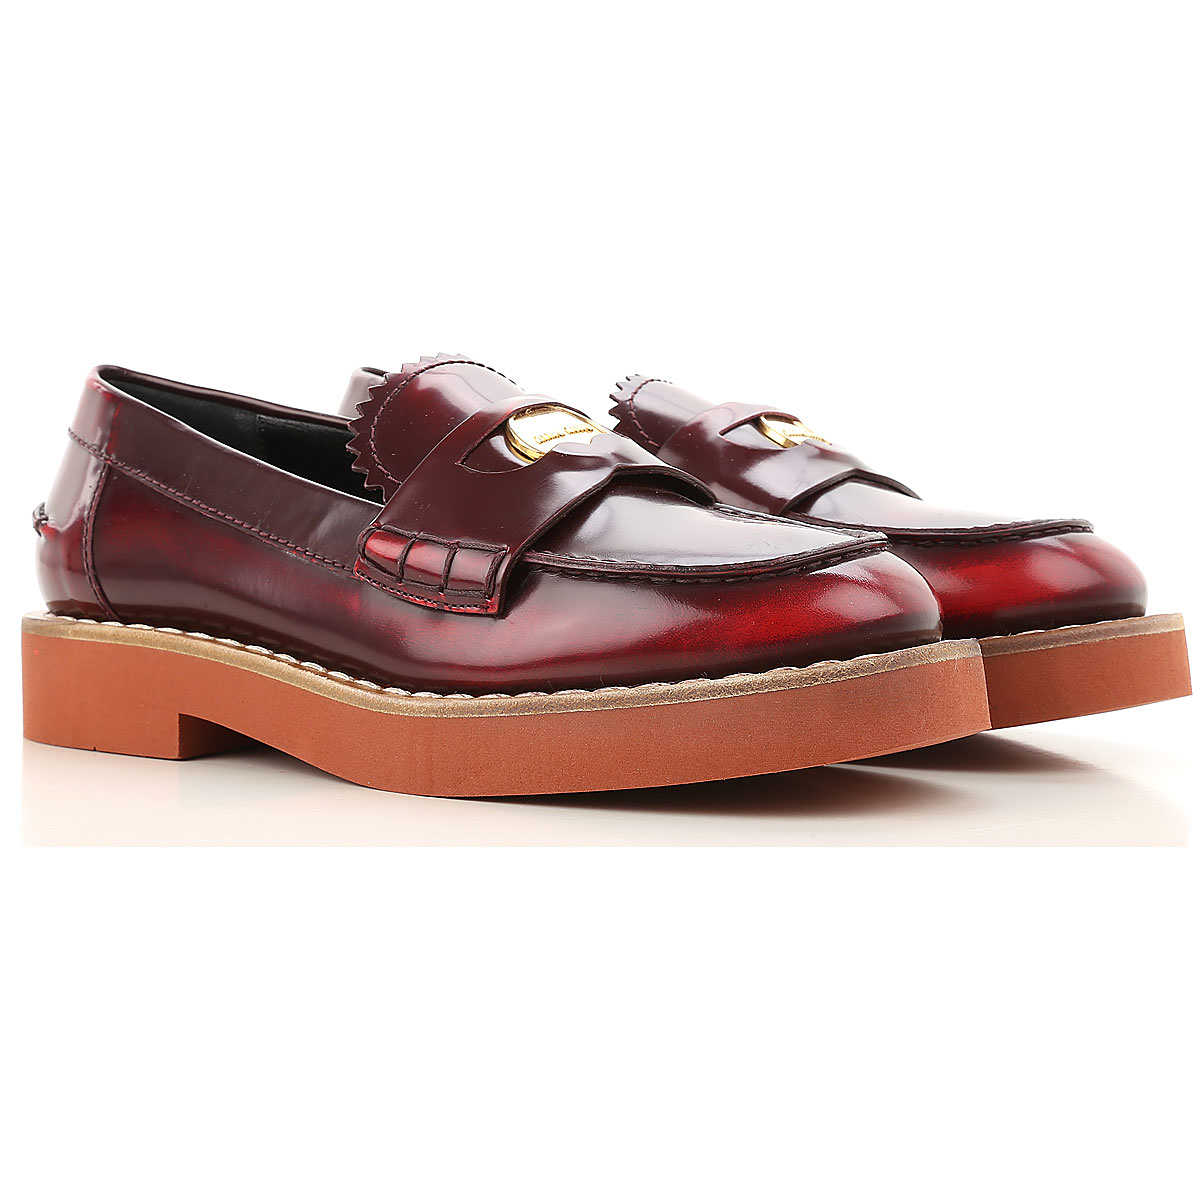 Miu Miu Loafers for Women On Sale in Outlet Red Scarlet DK - GOOFASH - Womens FLAT SHOES